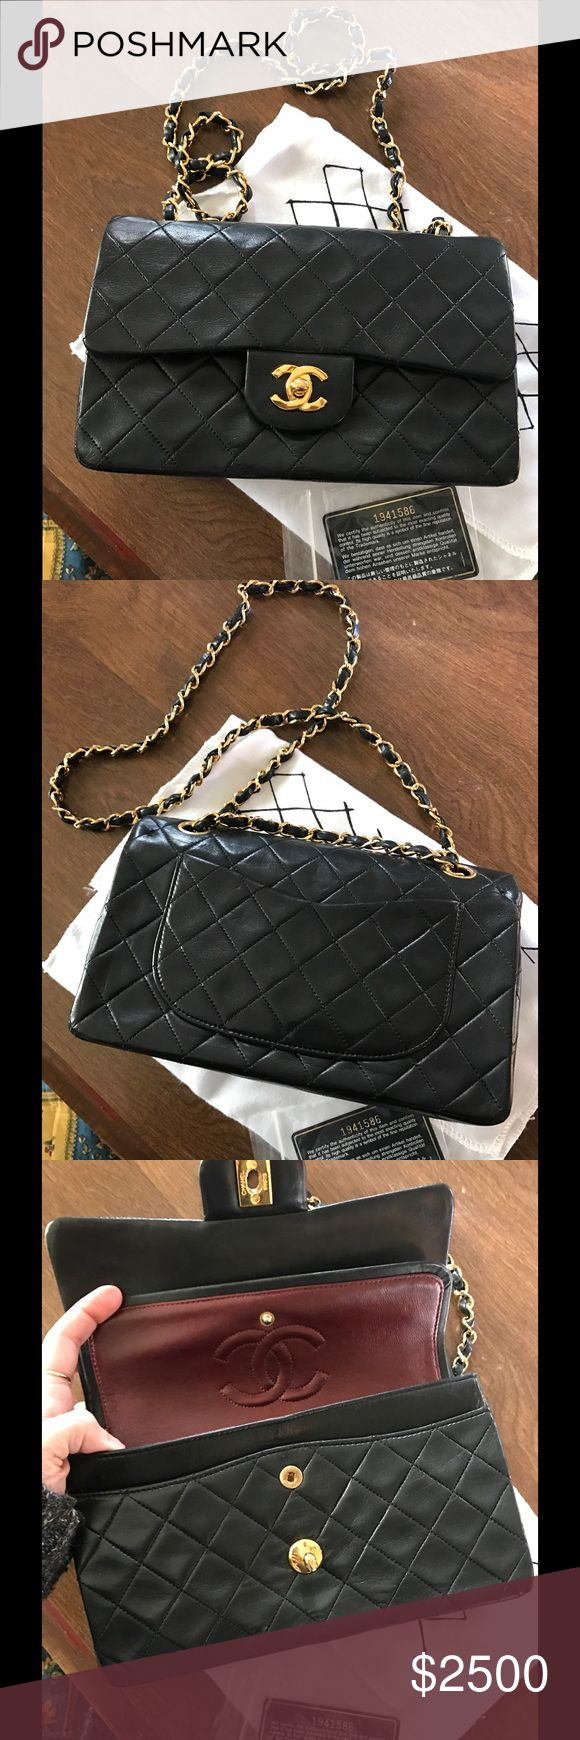 100% Authentic Vintage Chanel double flap bag Very nice used soft lambskin leather vintage Chanel double flap bag, has some scratches in the inner lining from normal use. Small size only comes with Authentic card. CHANEL Bags Shoulder Bags